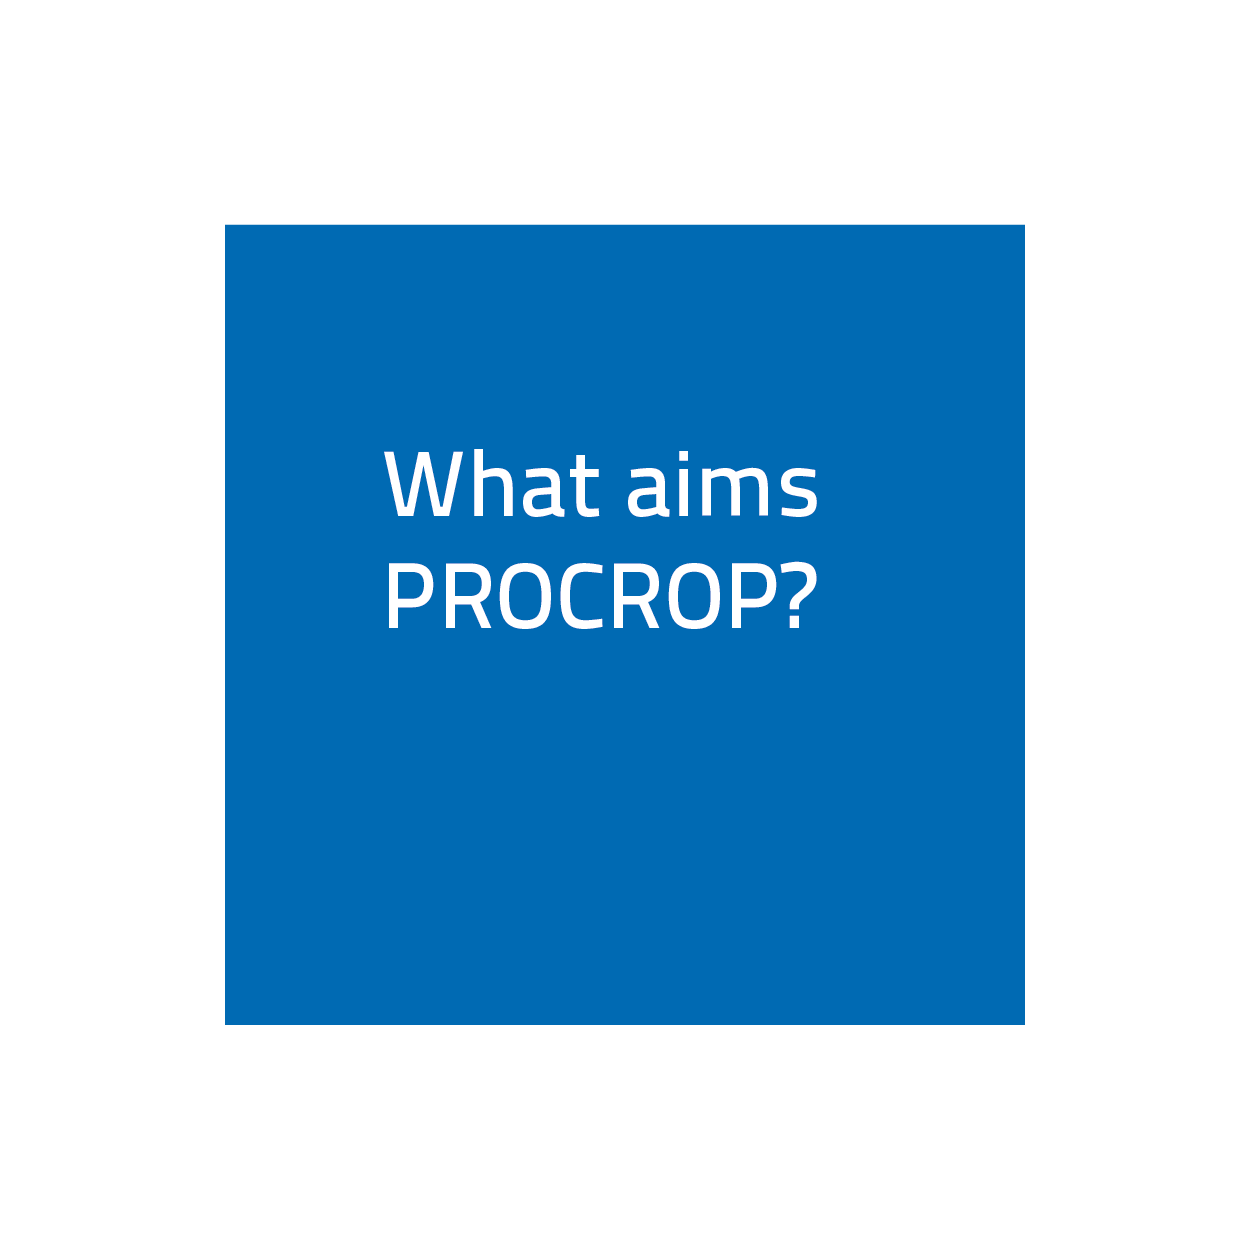 What aims PROCROP?